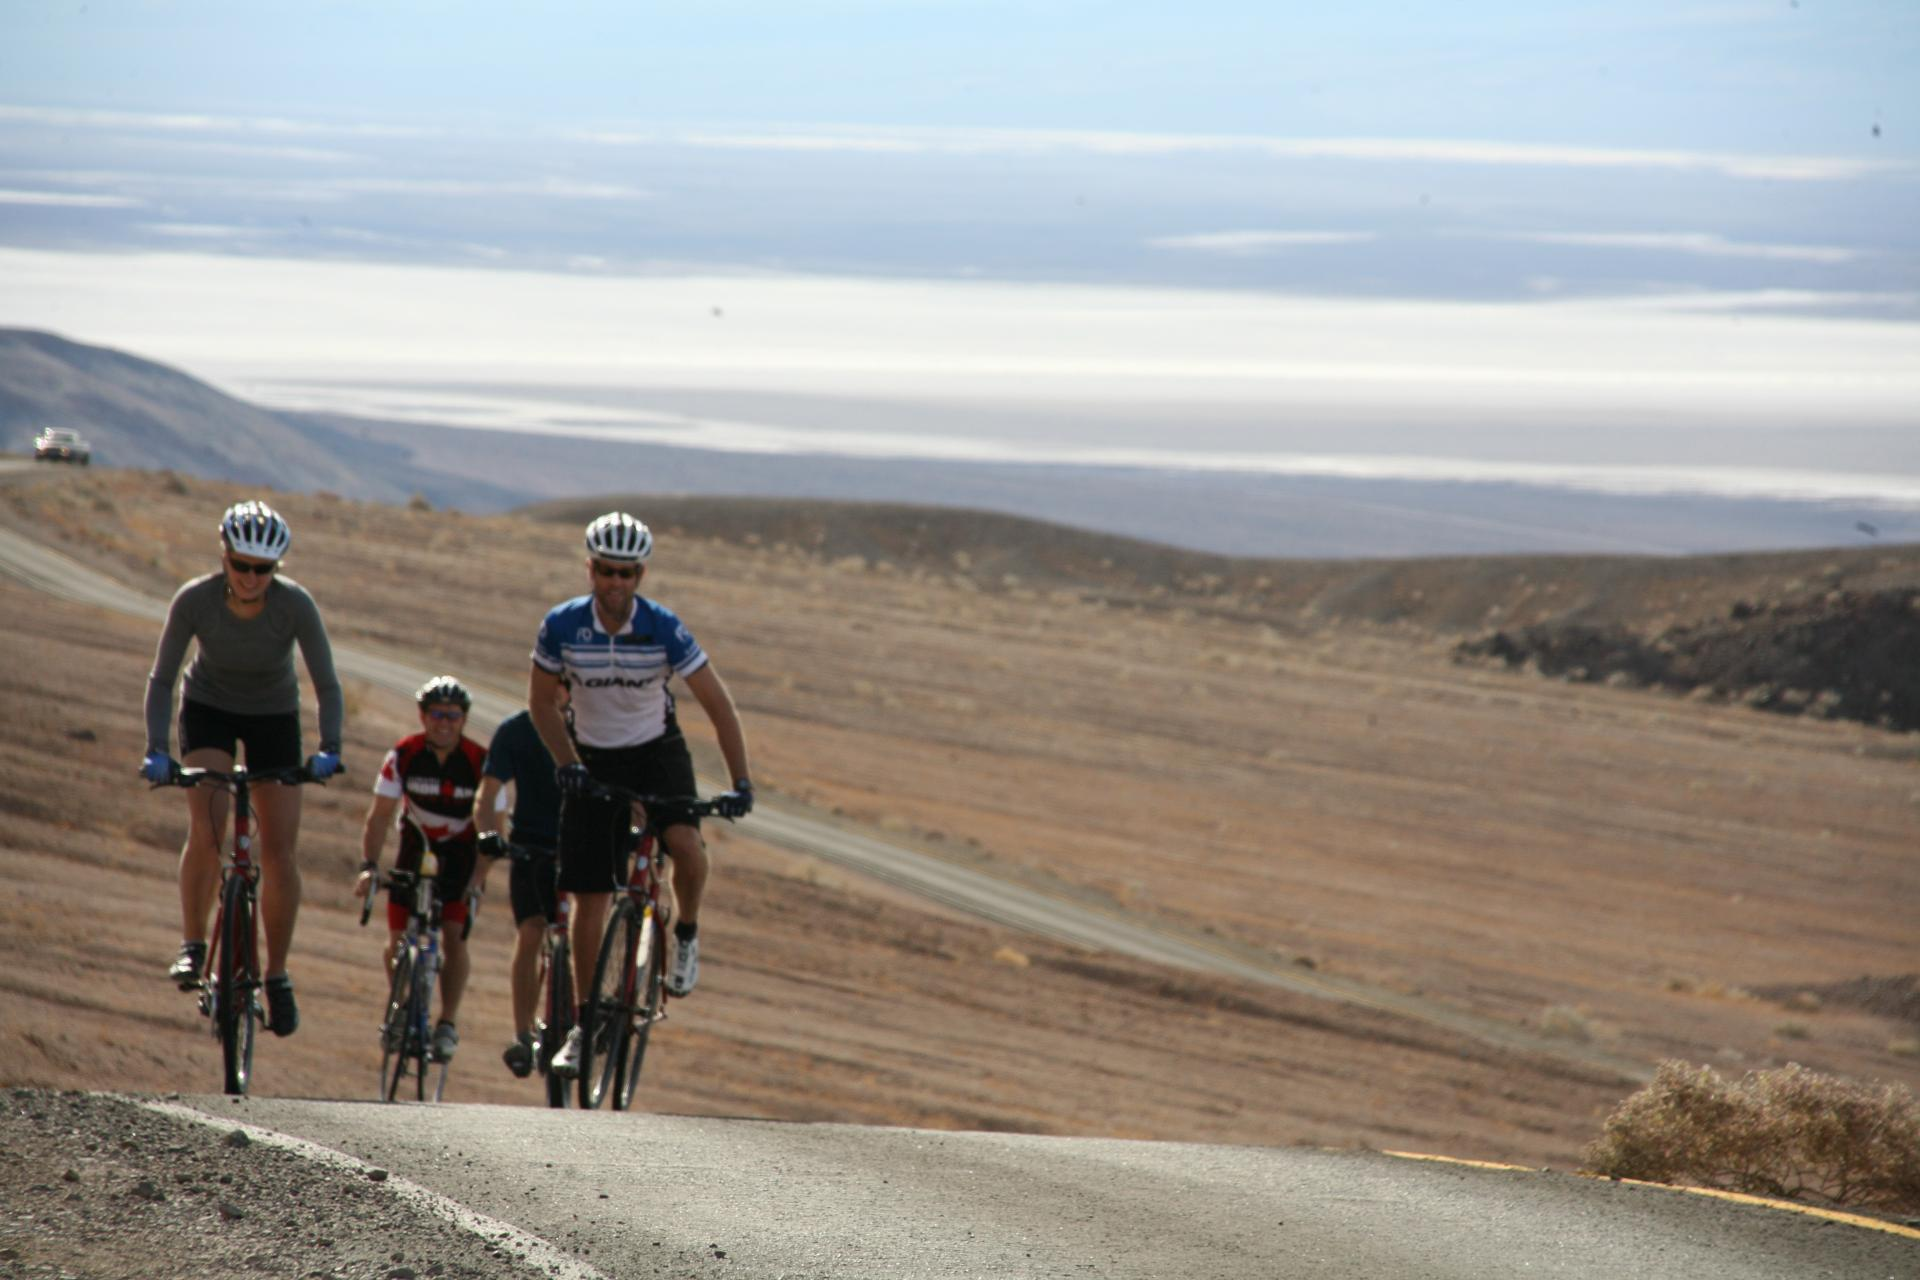 Bicycle Tour in Death Valley